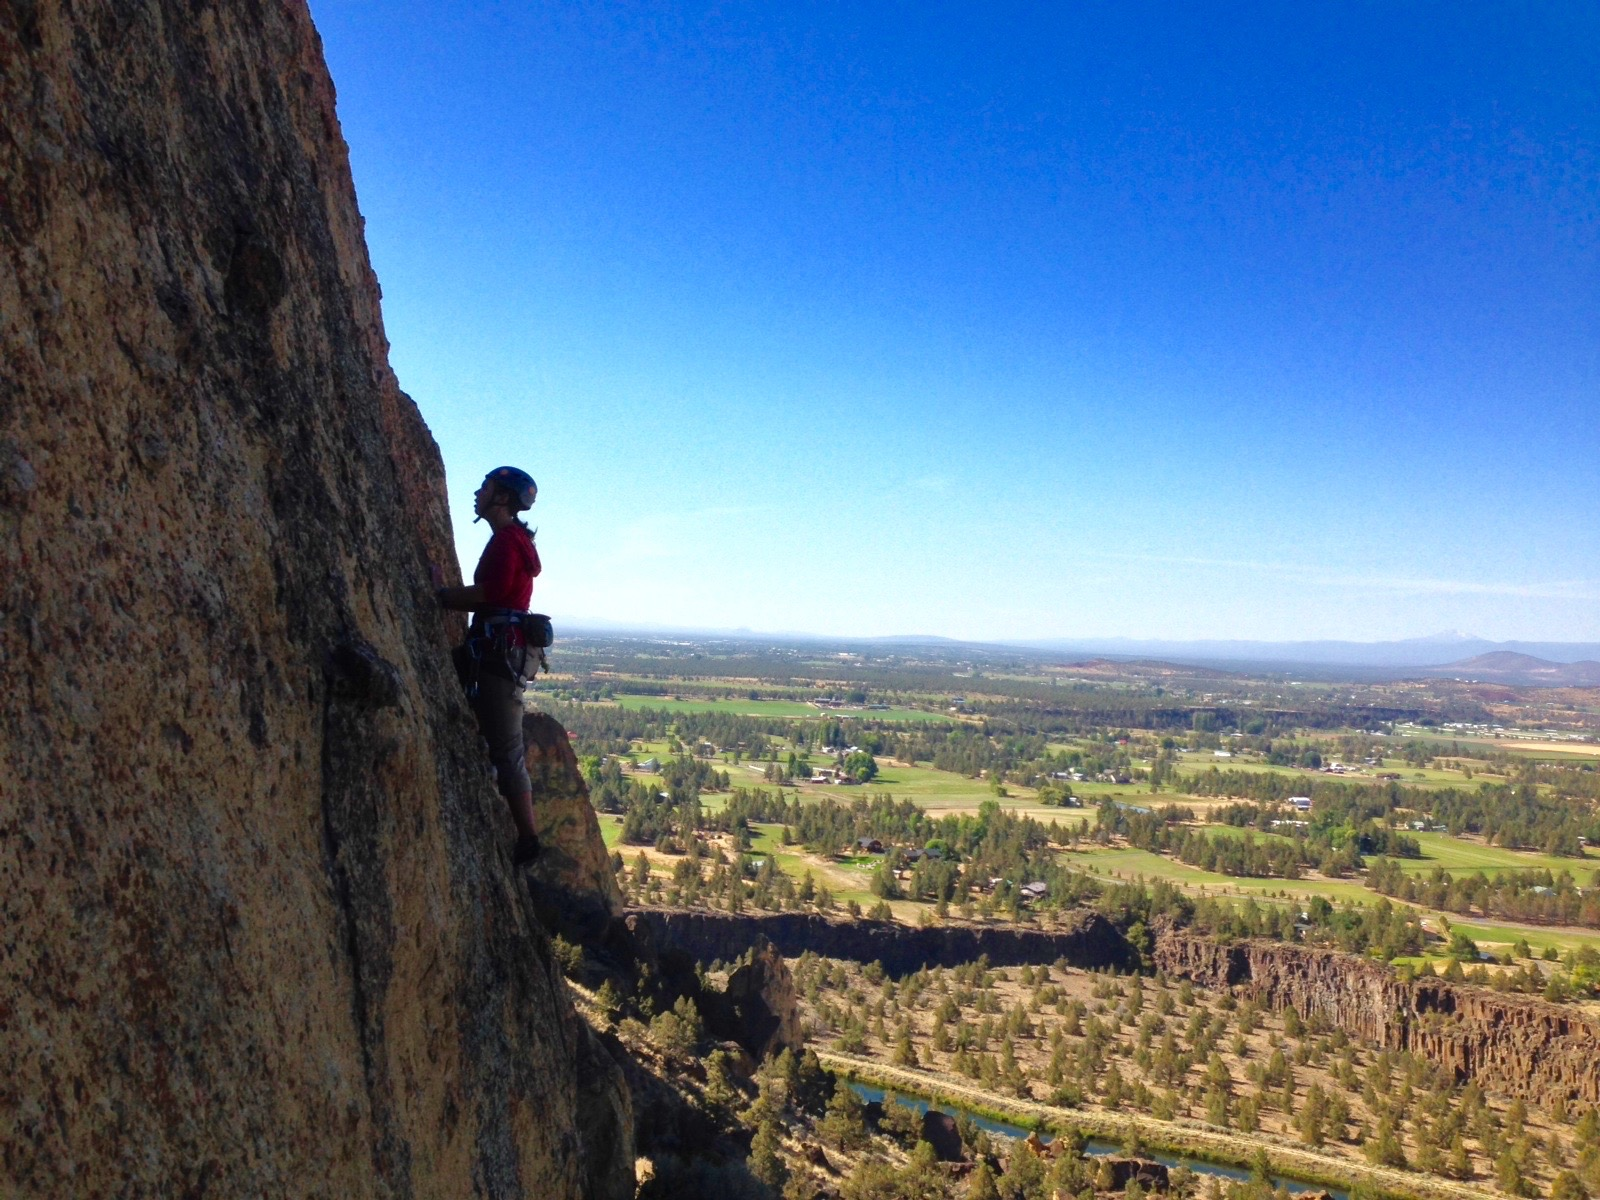 Walker climbing at Smith Rock State Park, Oregon.